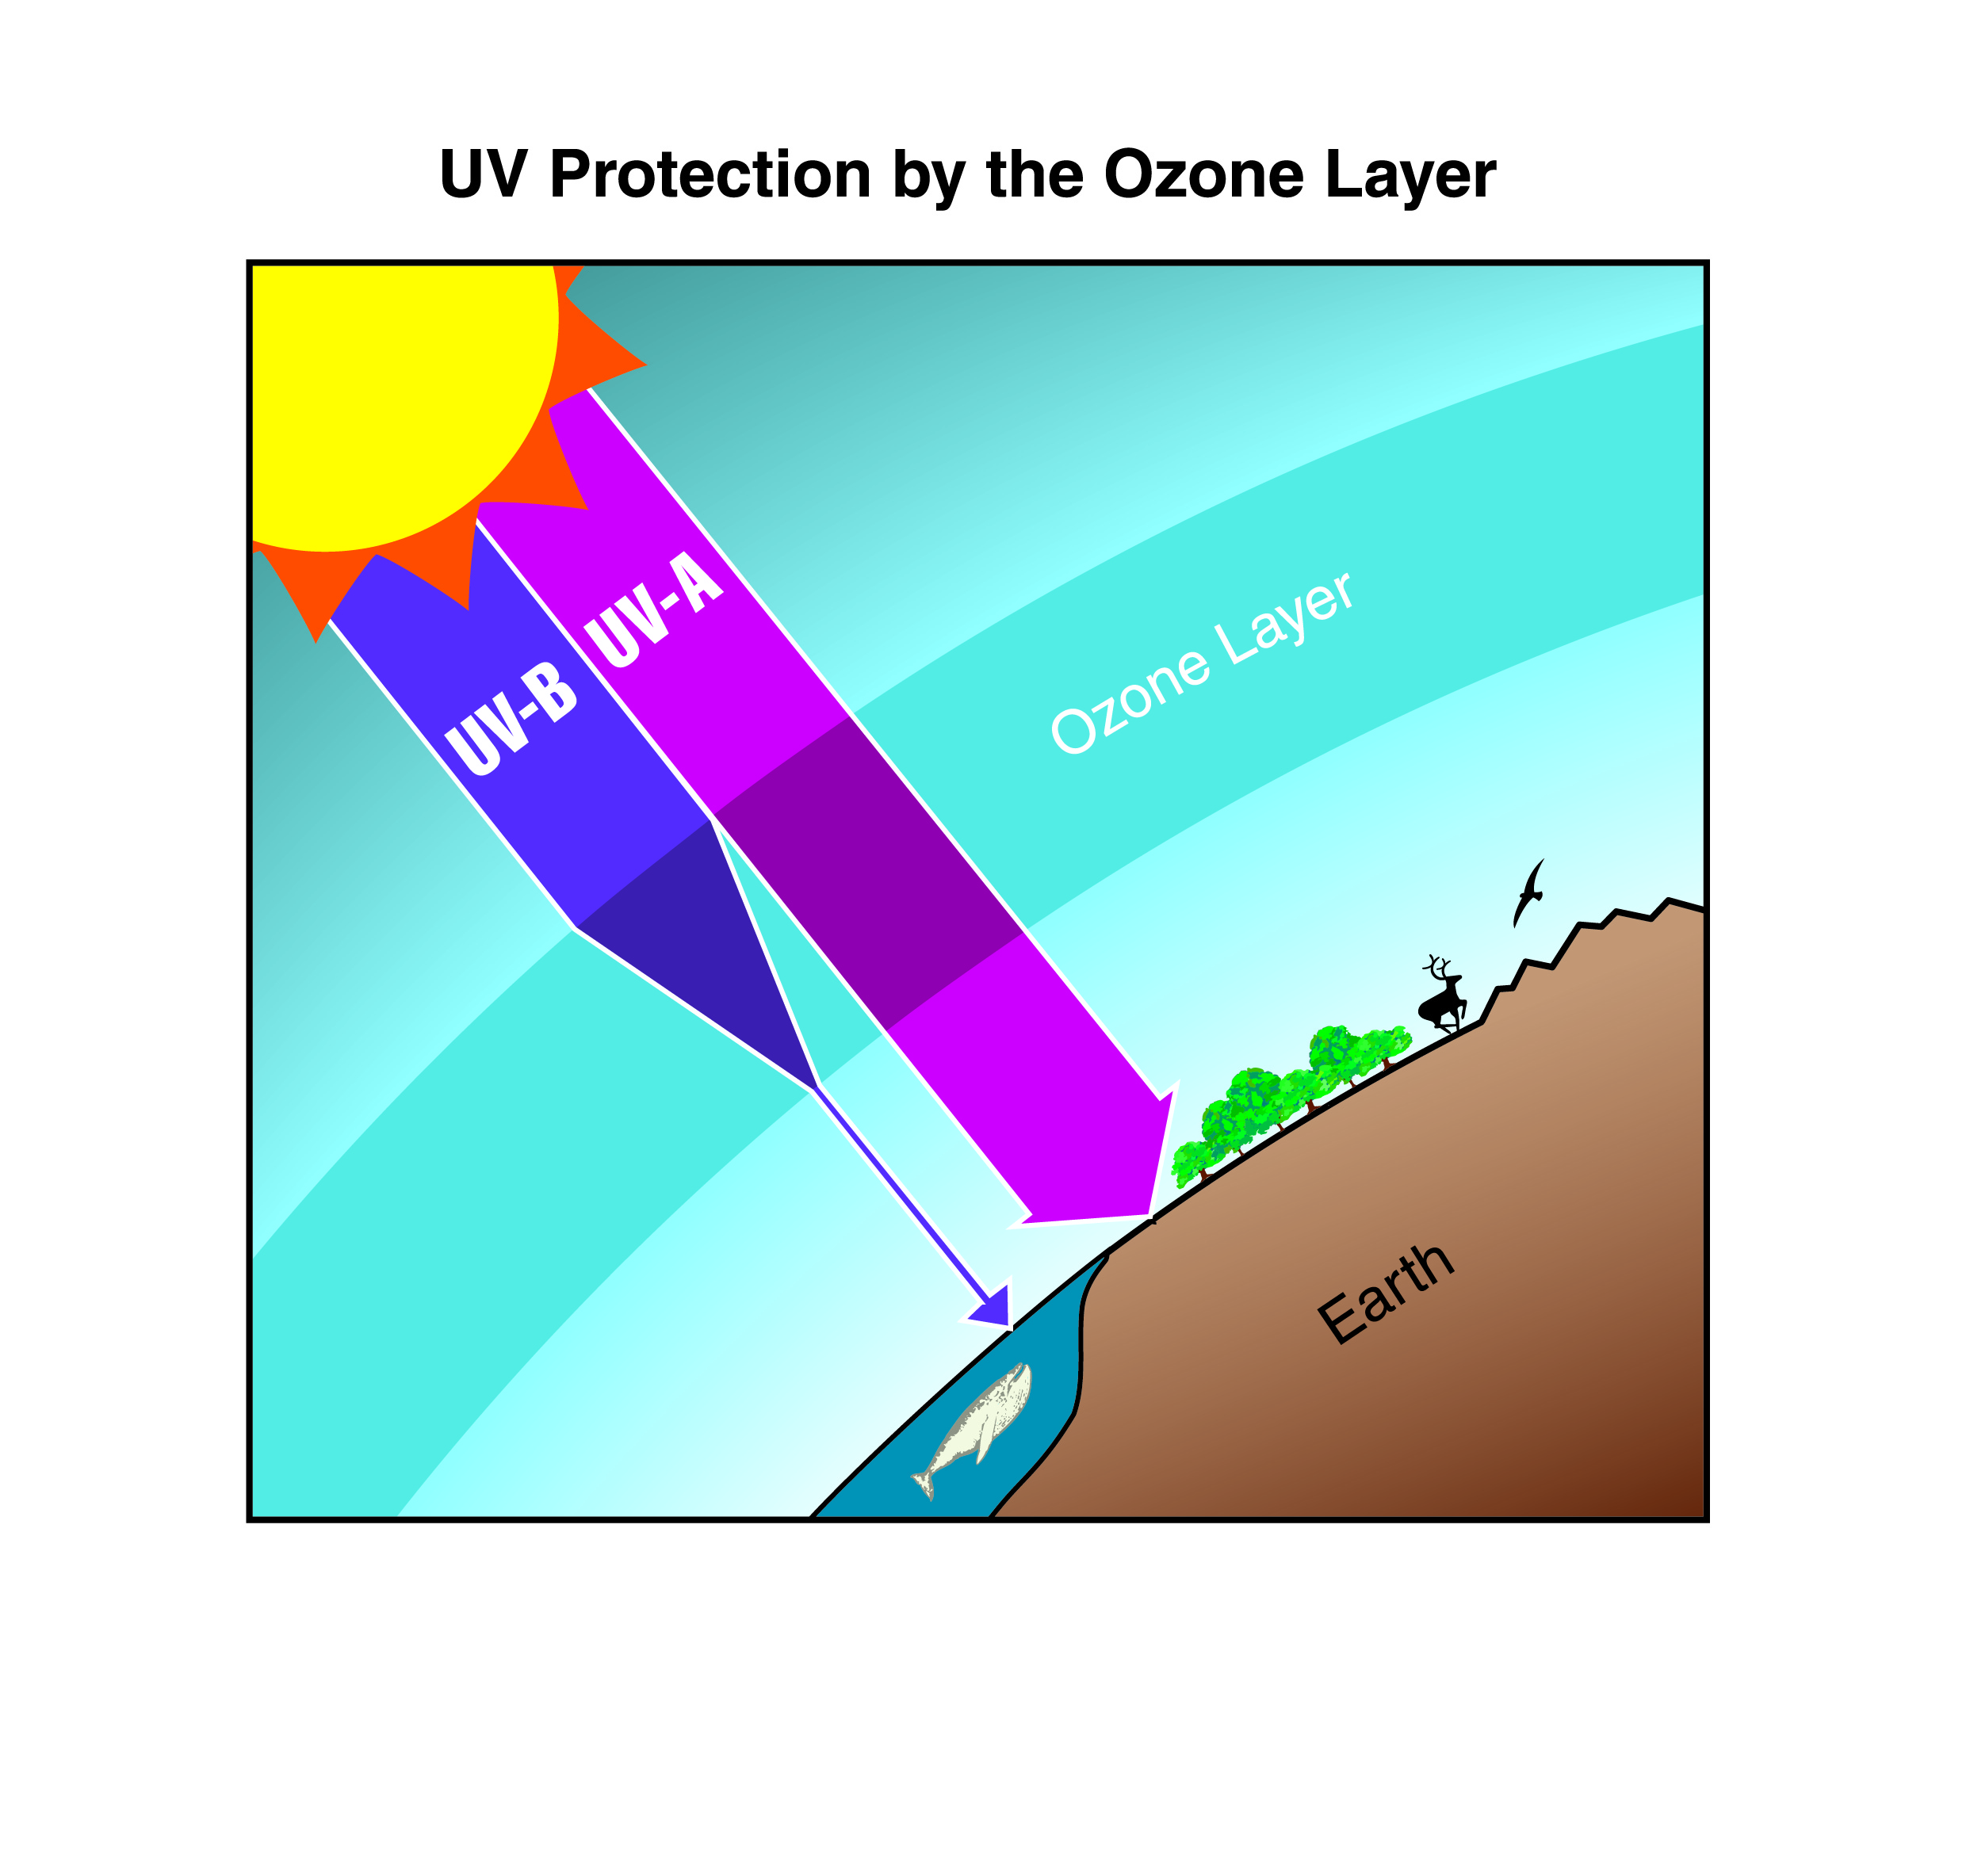 a discussion of the effects of a depleted ozone layer The main consequence of a depleted ozone layer is a reduction in the protection it affords against harmful ultraviolet radiation (uvb) emanating from the sun according to the environmental.